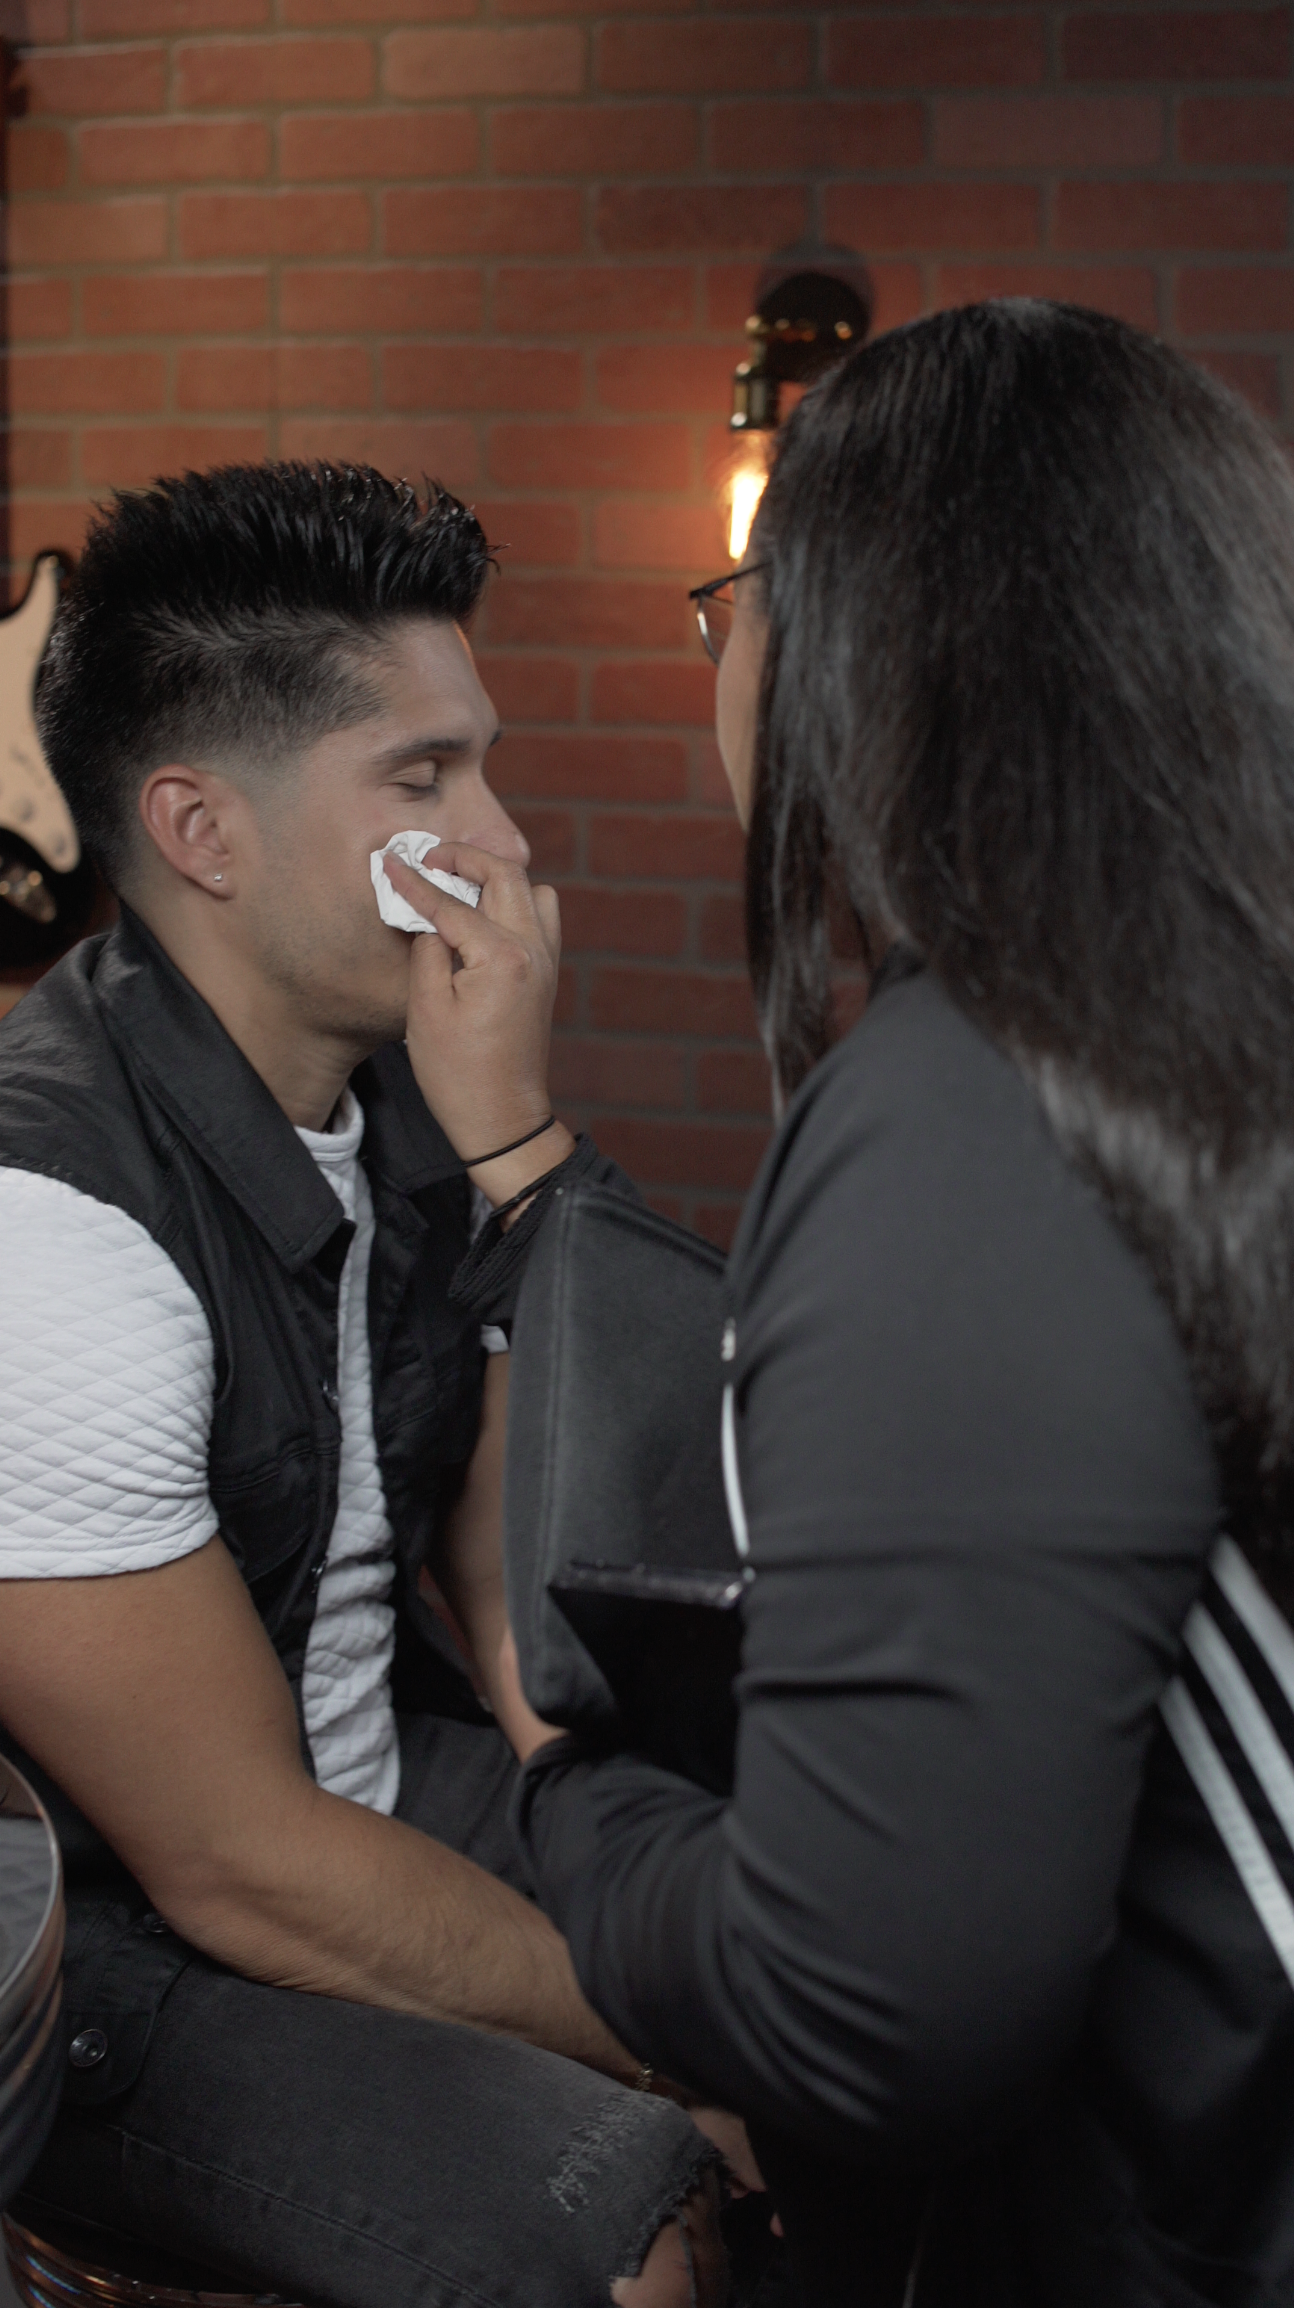 Makeup Artist Karla Fuenmayor on set with  Chyno Miranda